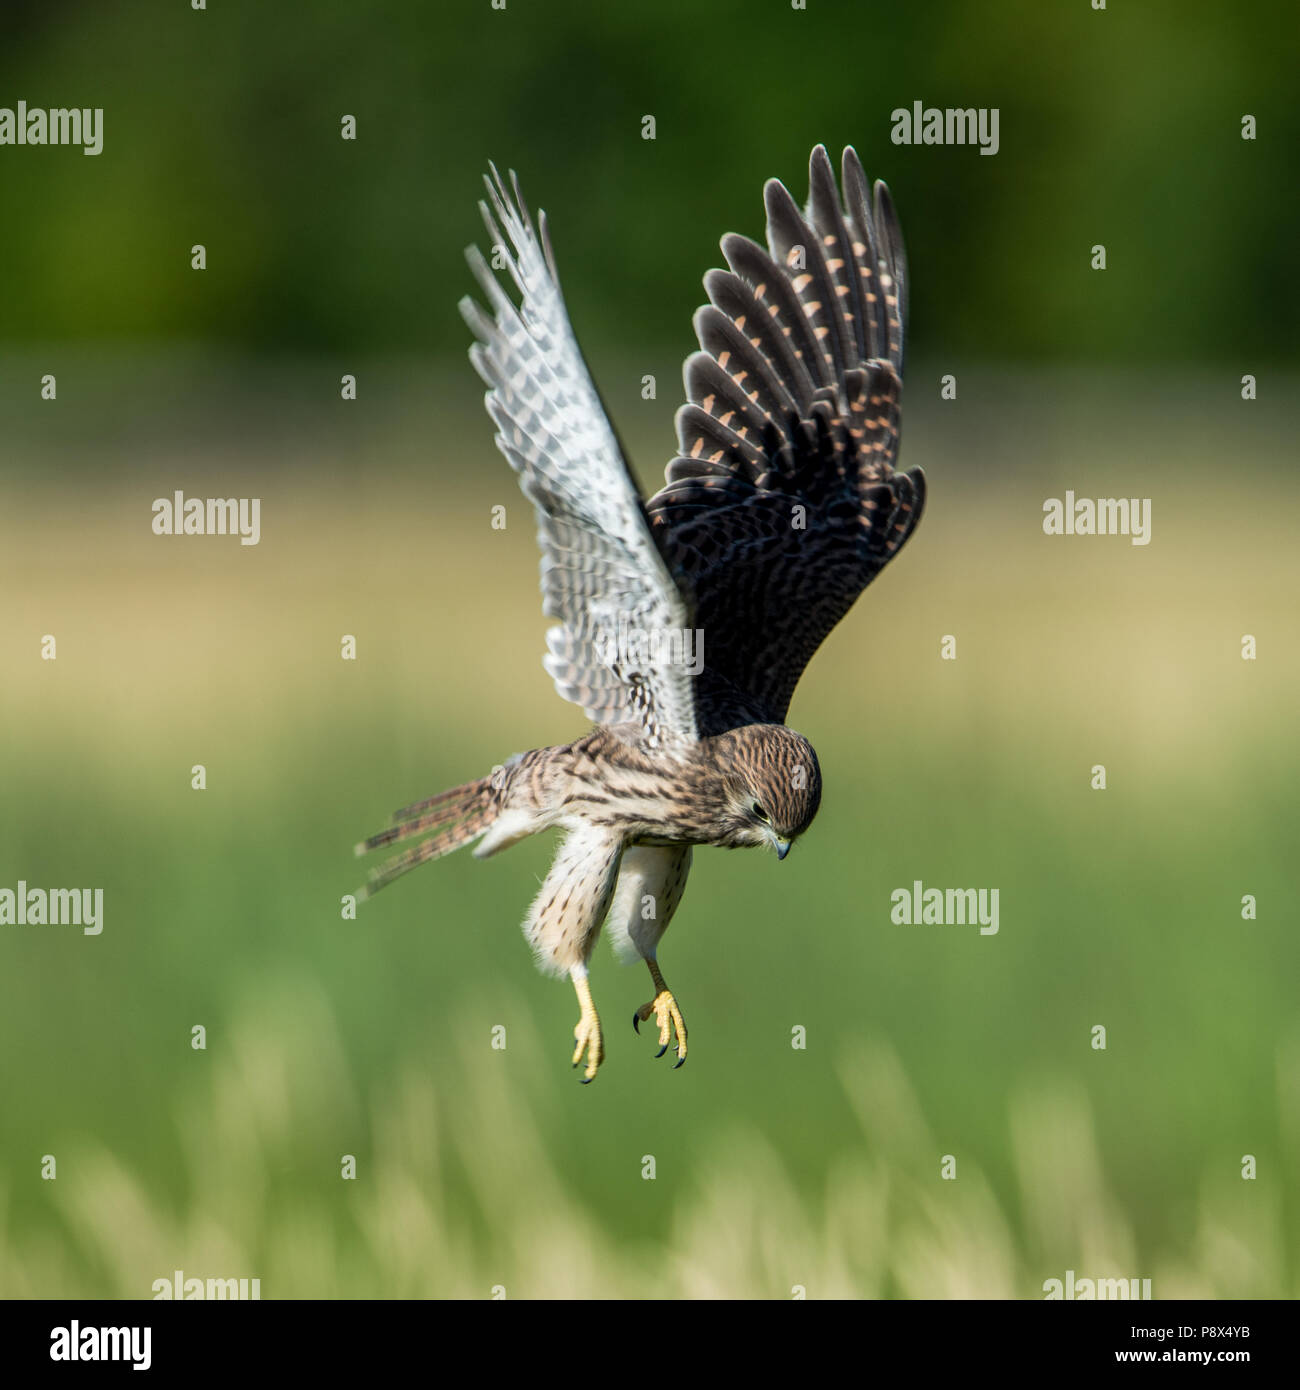 The young hovering Old World Kestrel (Falco tinnunculus) searching for prey on the meadow - Stock Image